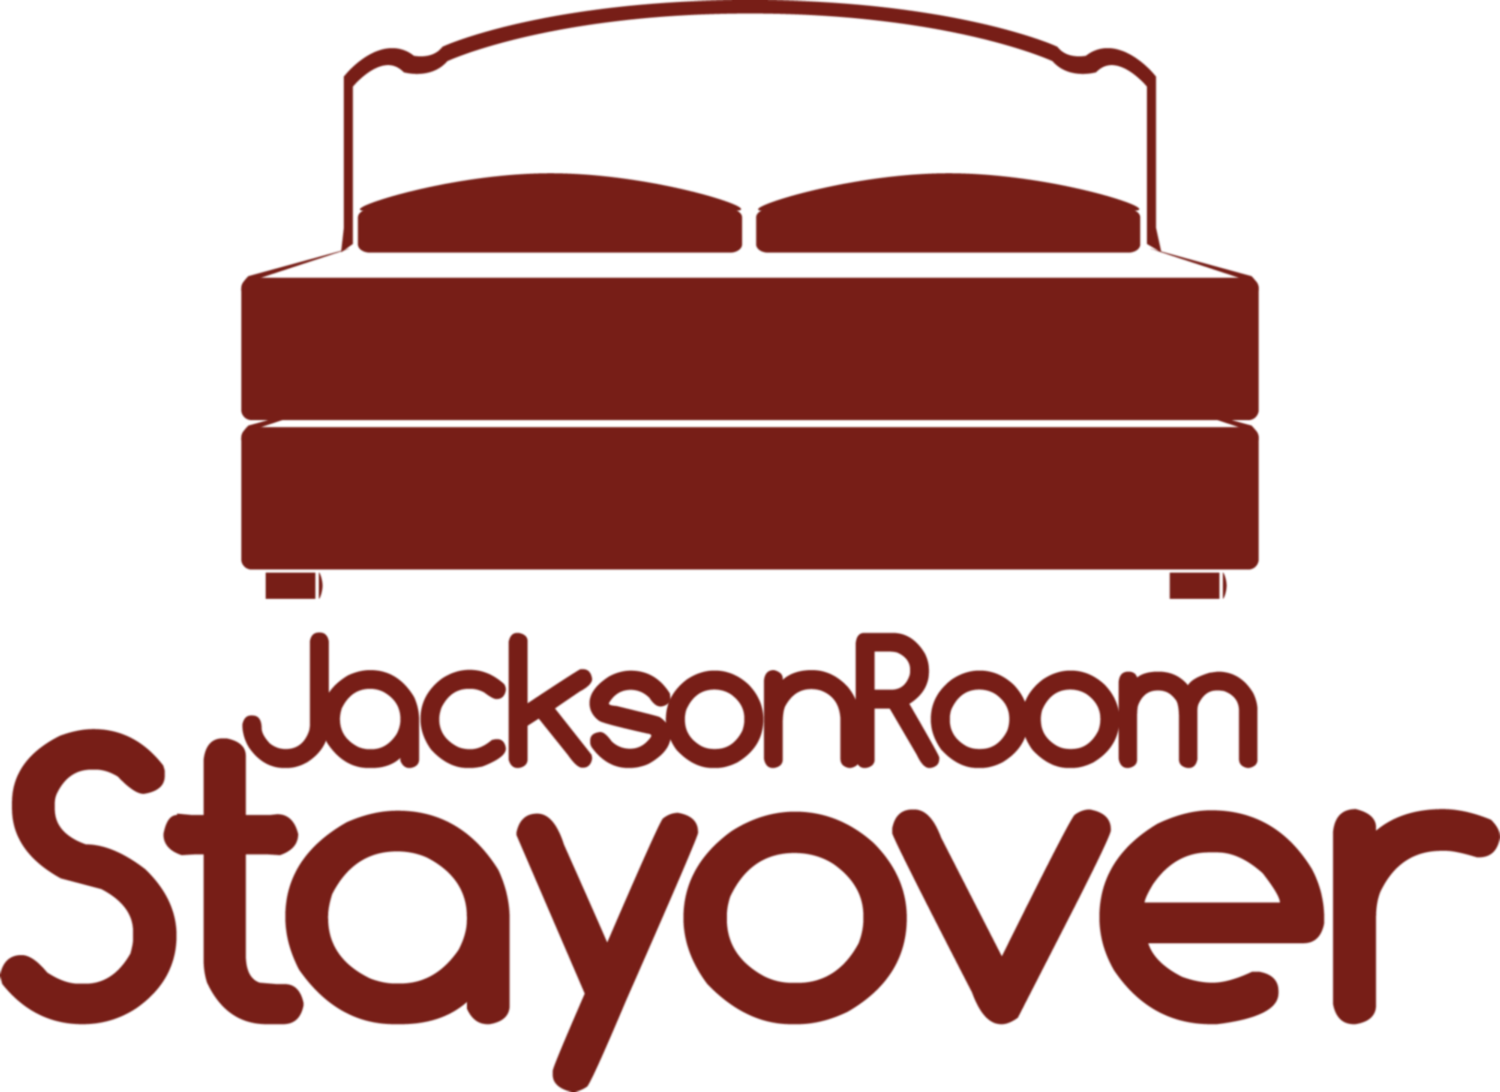 JacksonRoom Stayover